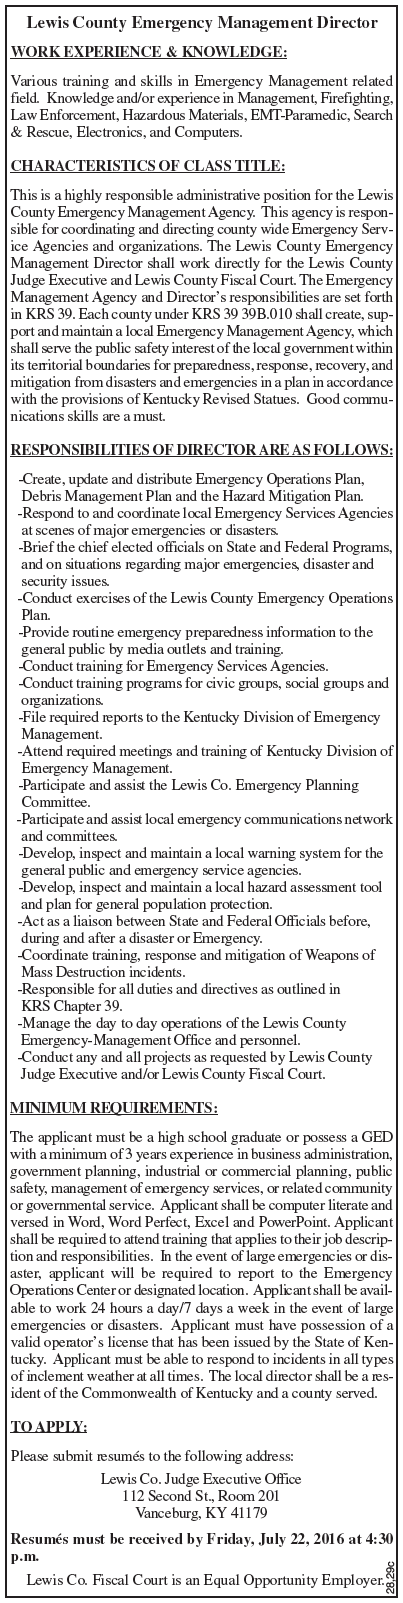 Lewis County Position for Emergency Management Director